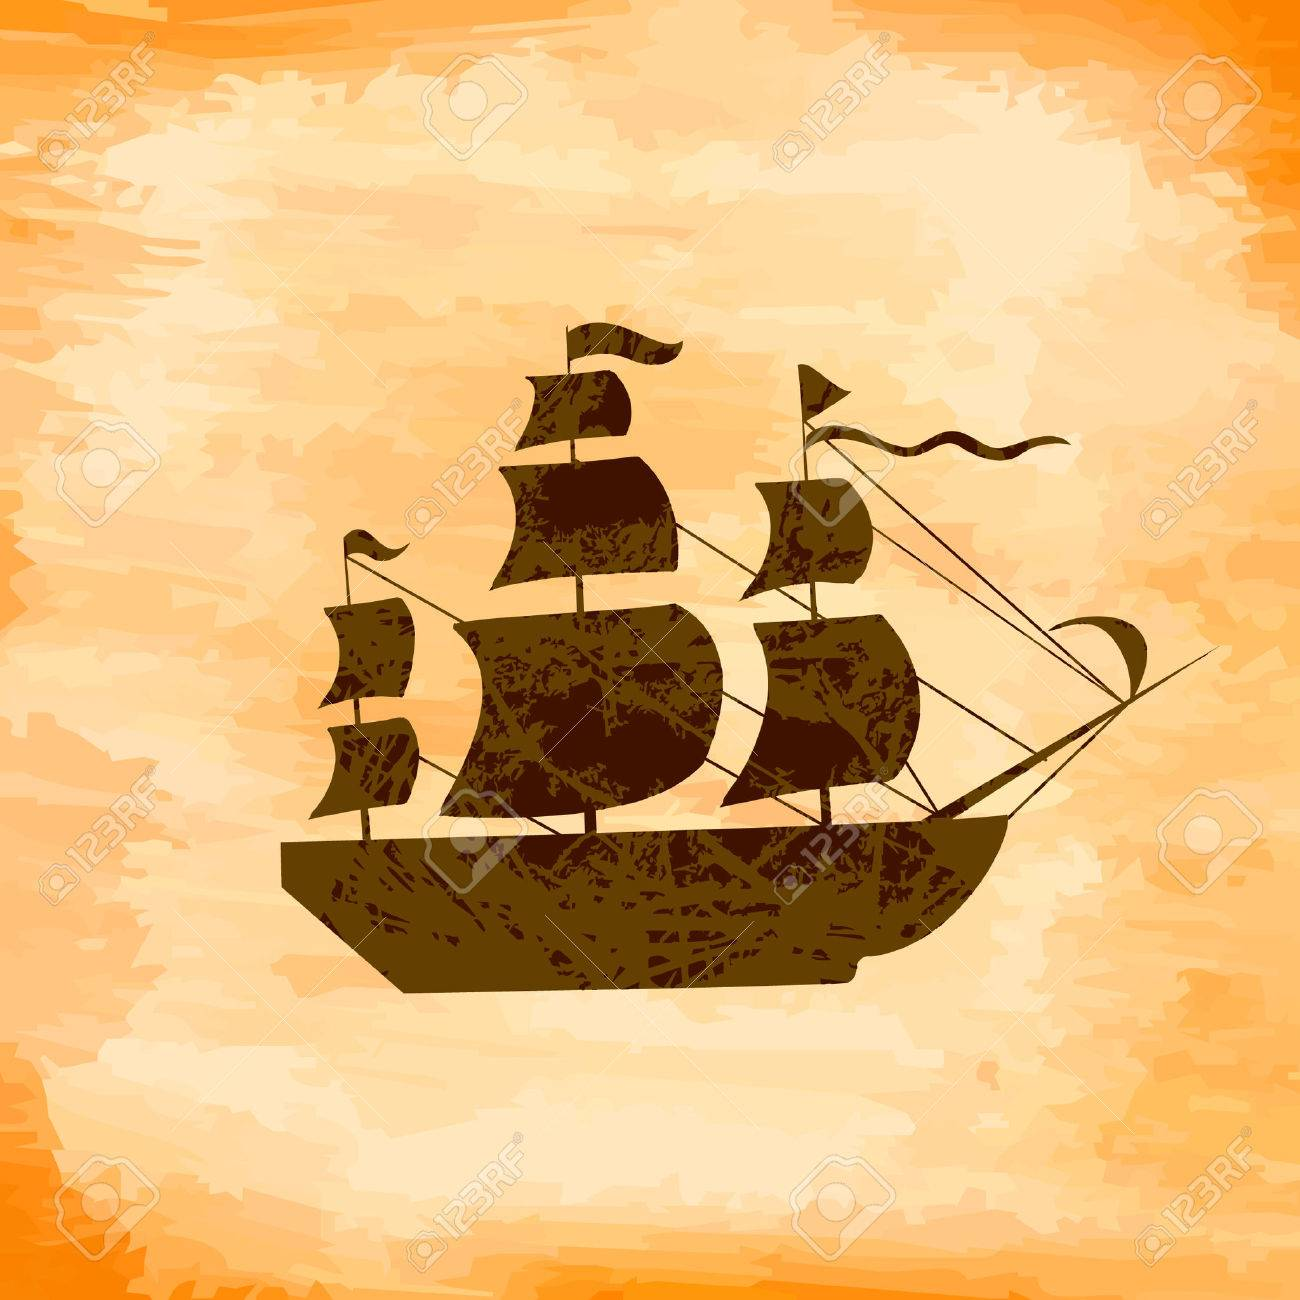 Boat on the background grunge Stock Vector - 7560669